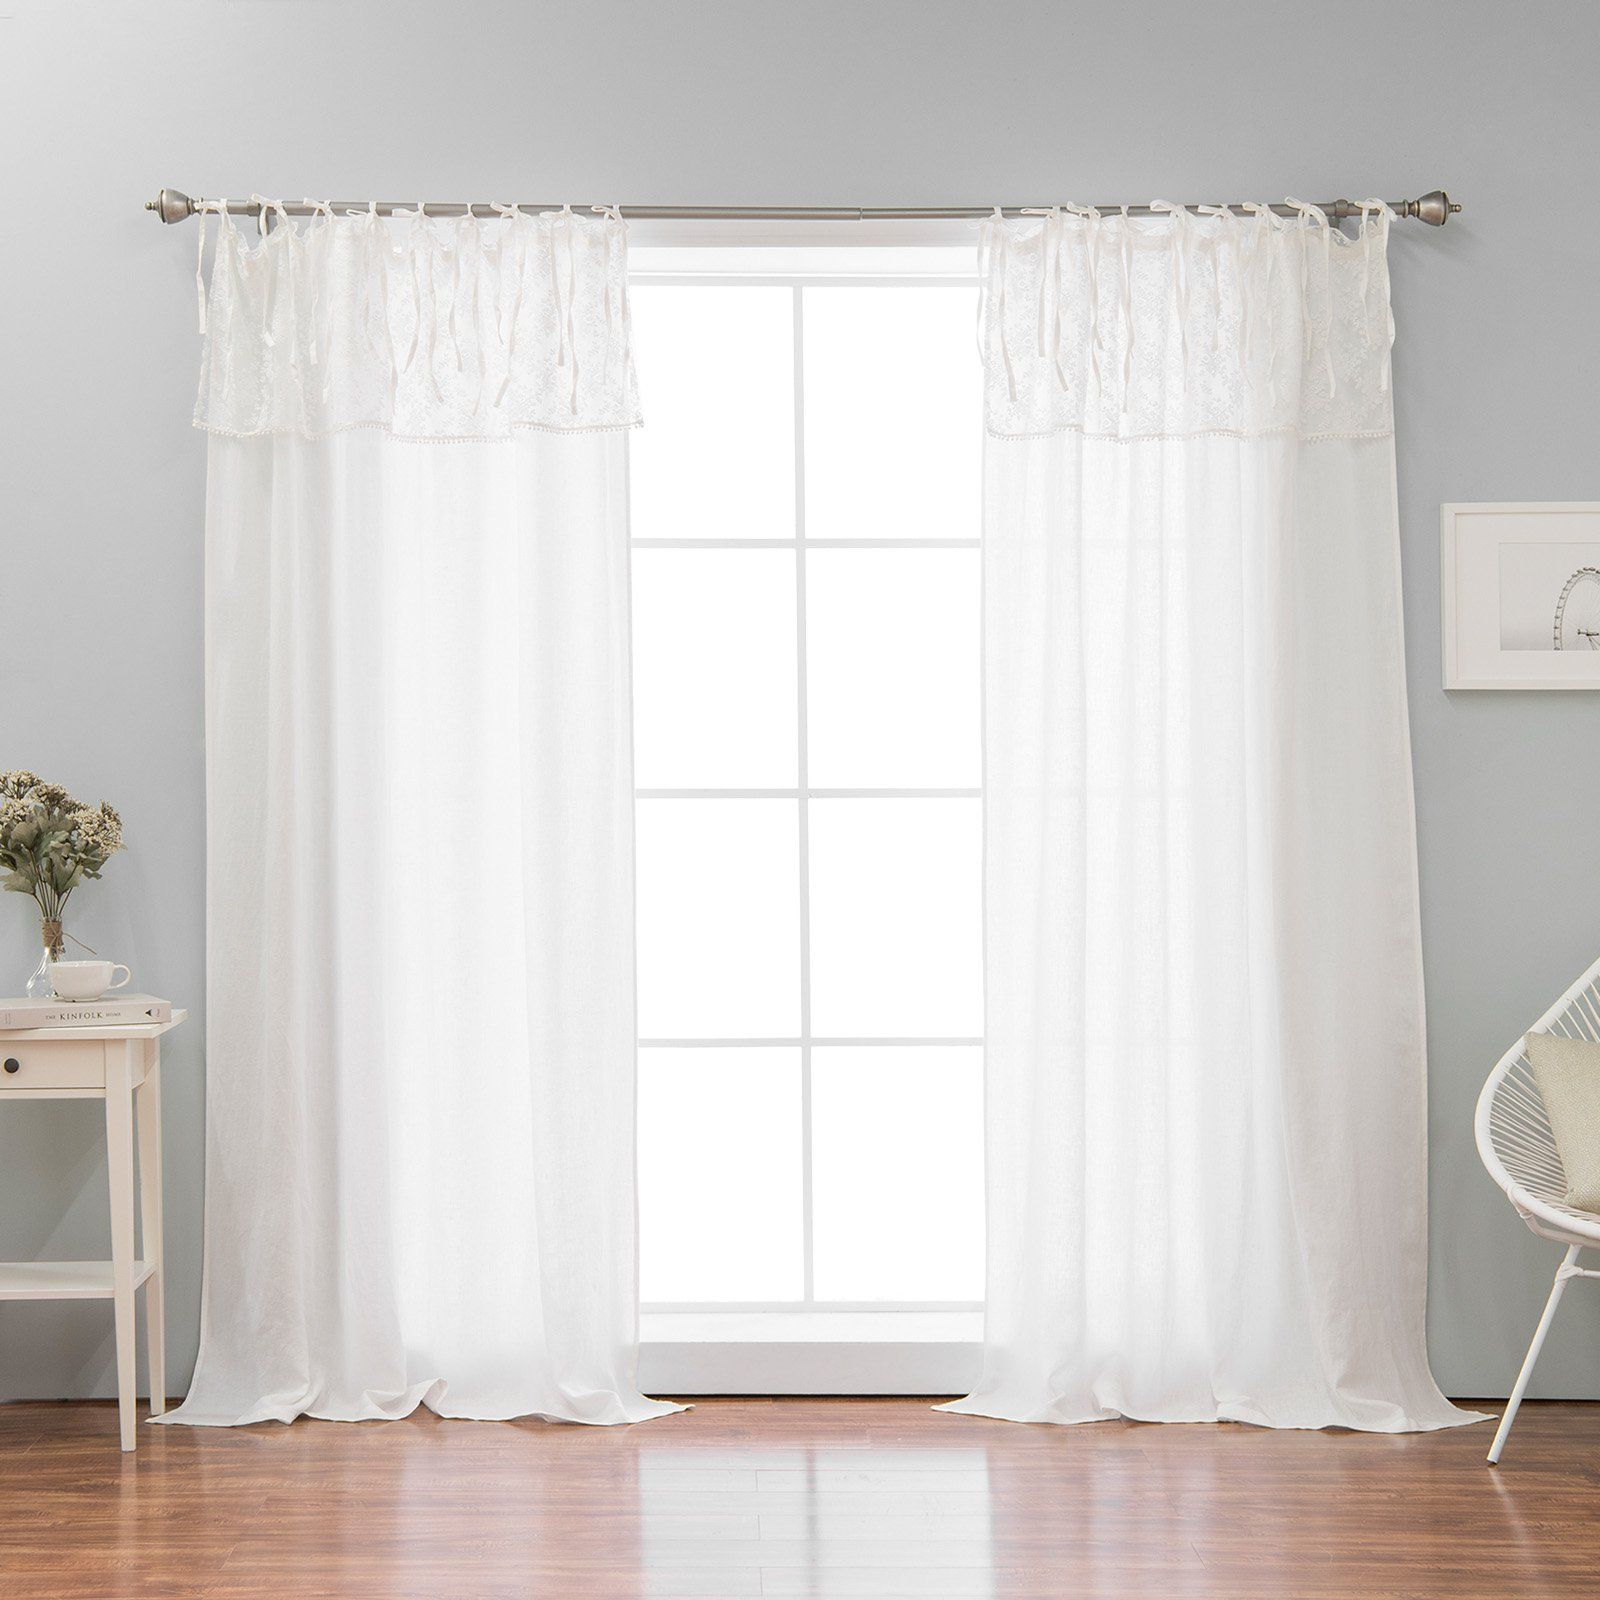 Best Home Fashion Abelia Belgian Flax Single Curtain Panel With